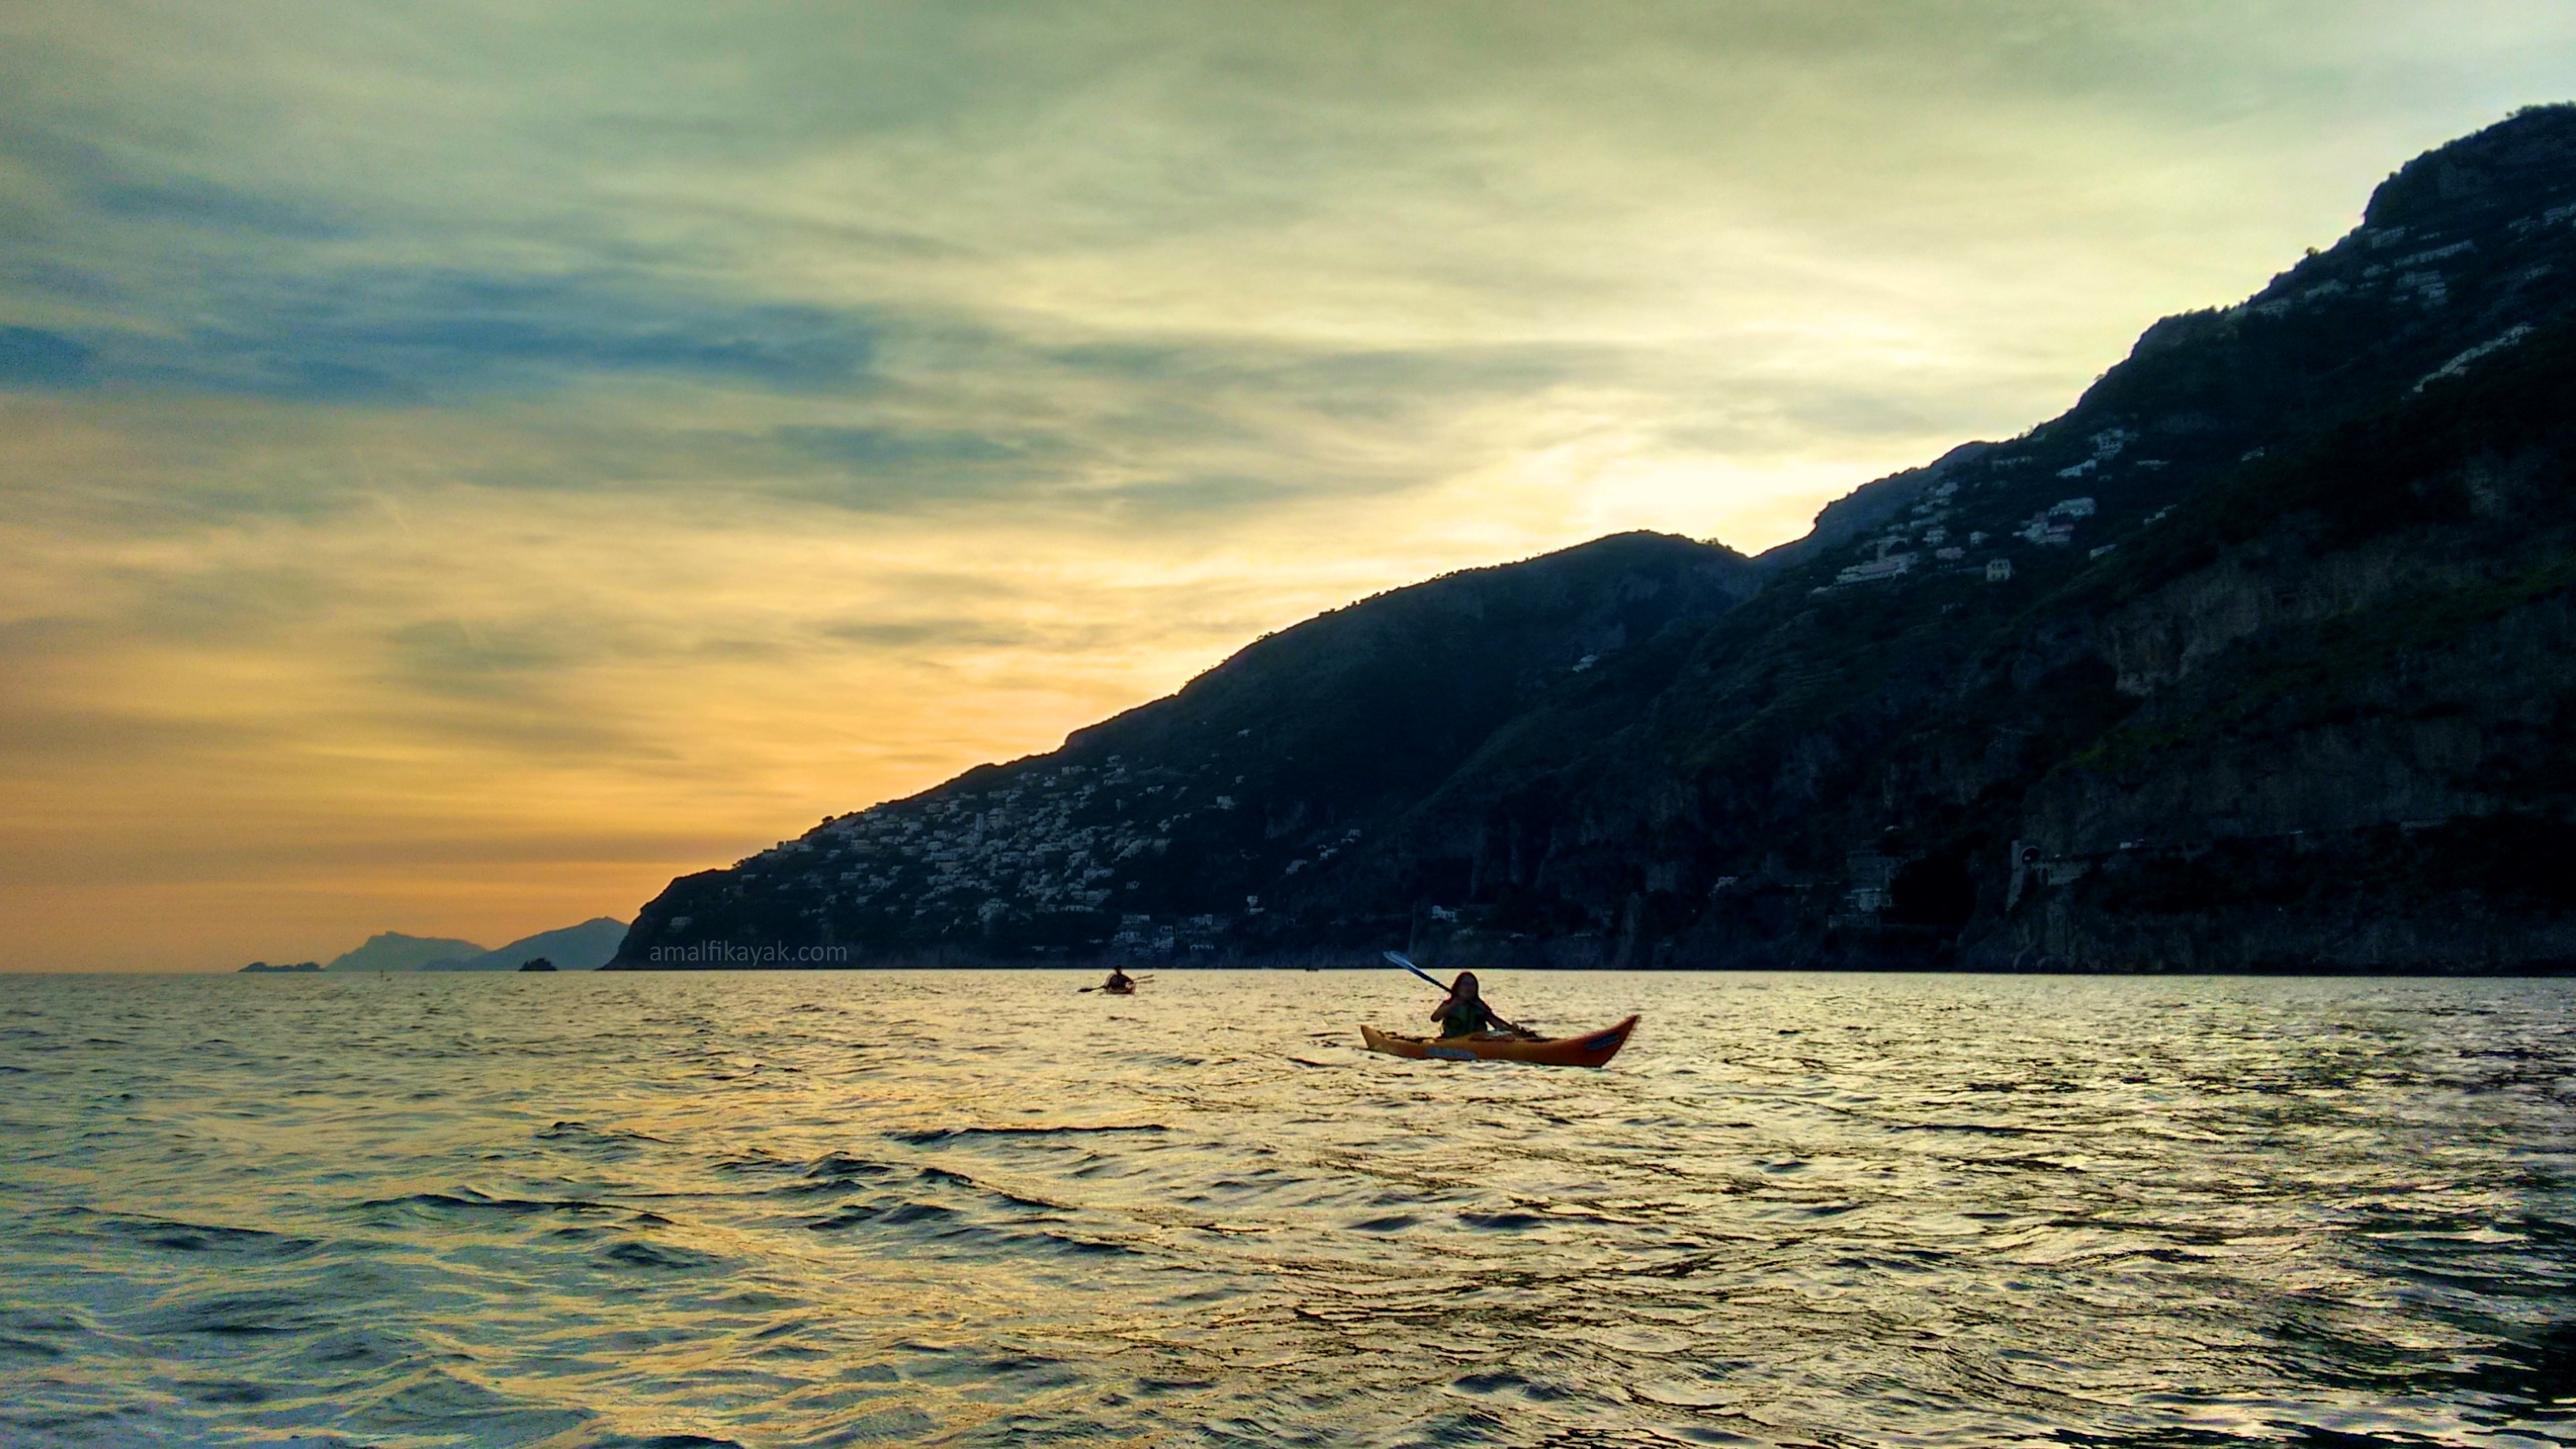 Sunset in Conca - Amalfi Kayak